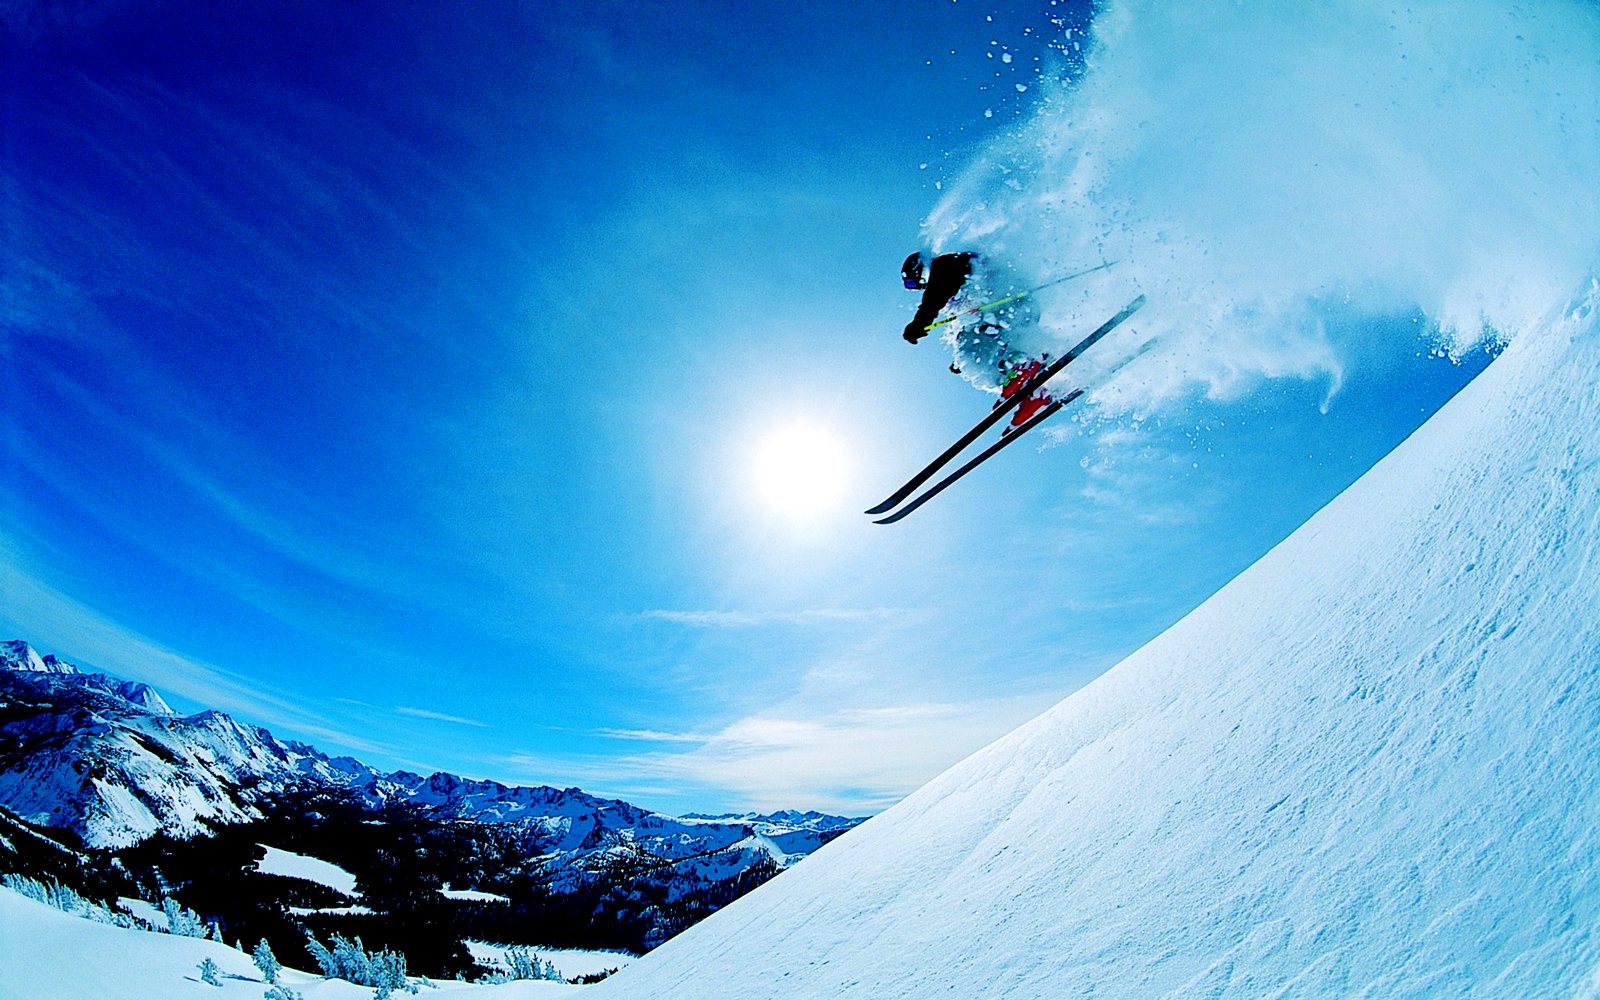 Wallpaper: Hd Snowboarding Wallpaper Iphone